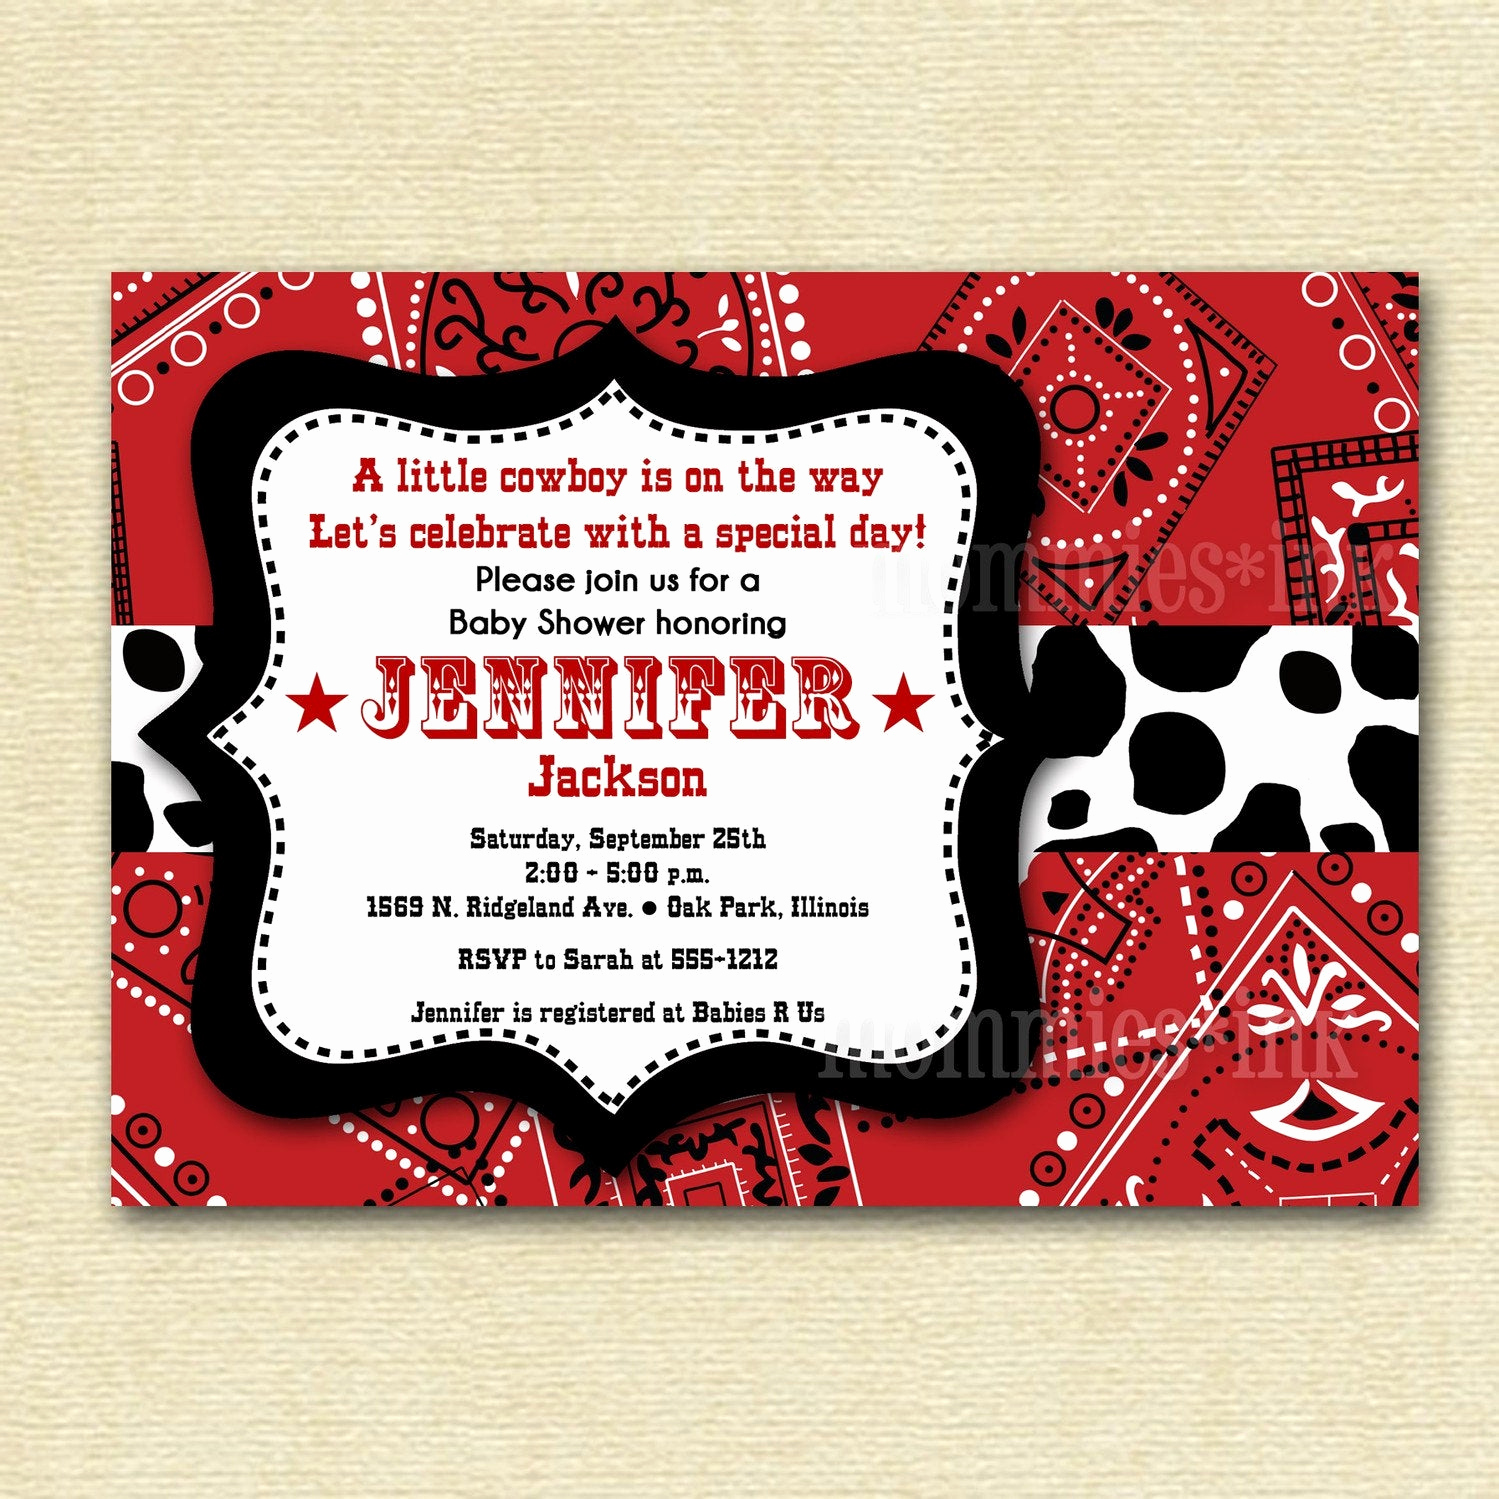 Western theme Party Invitation Template Awesome Baby Shower Invitation Bandana Invitation Bandana by